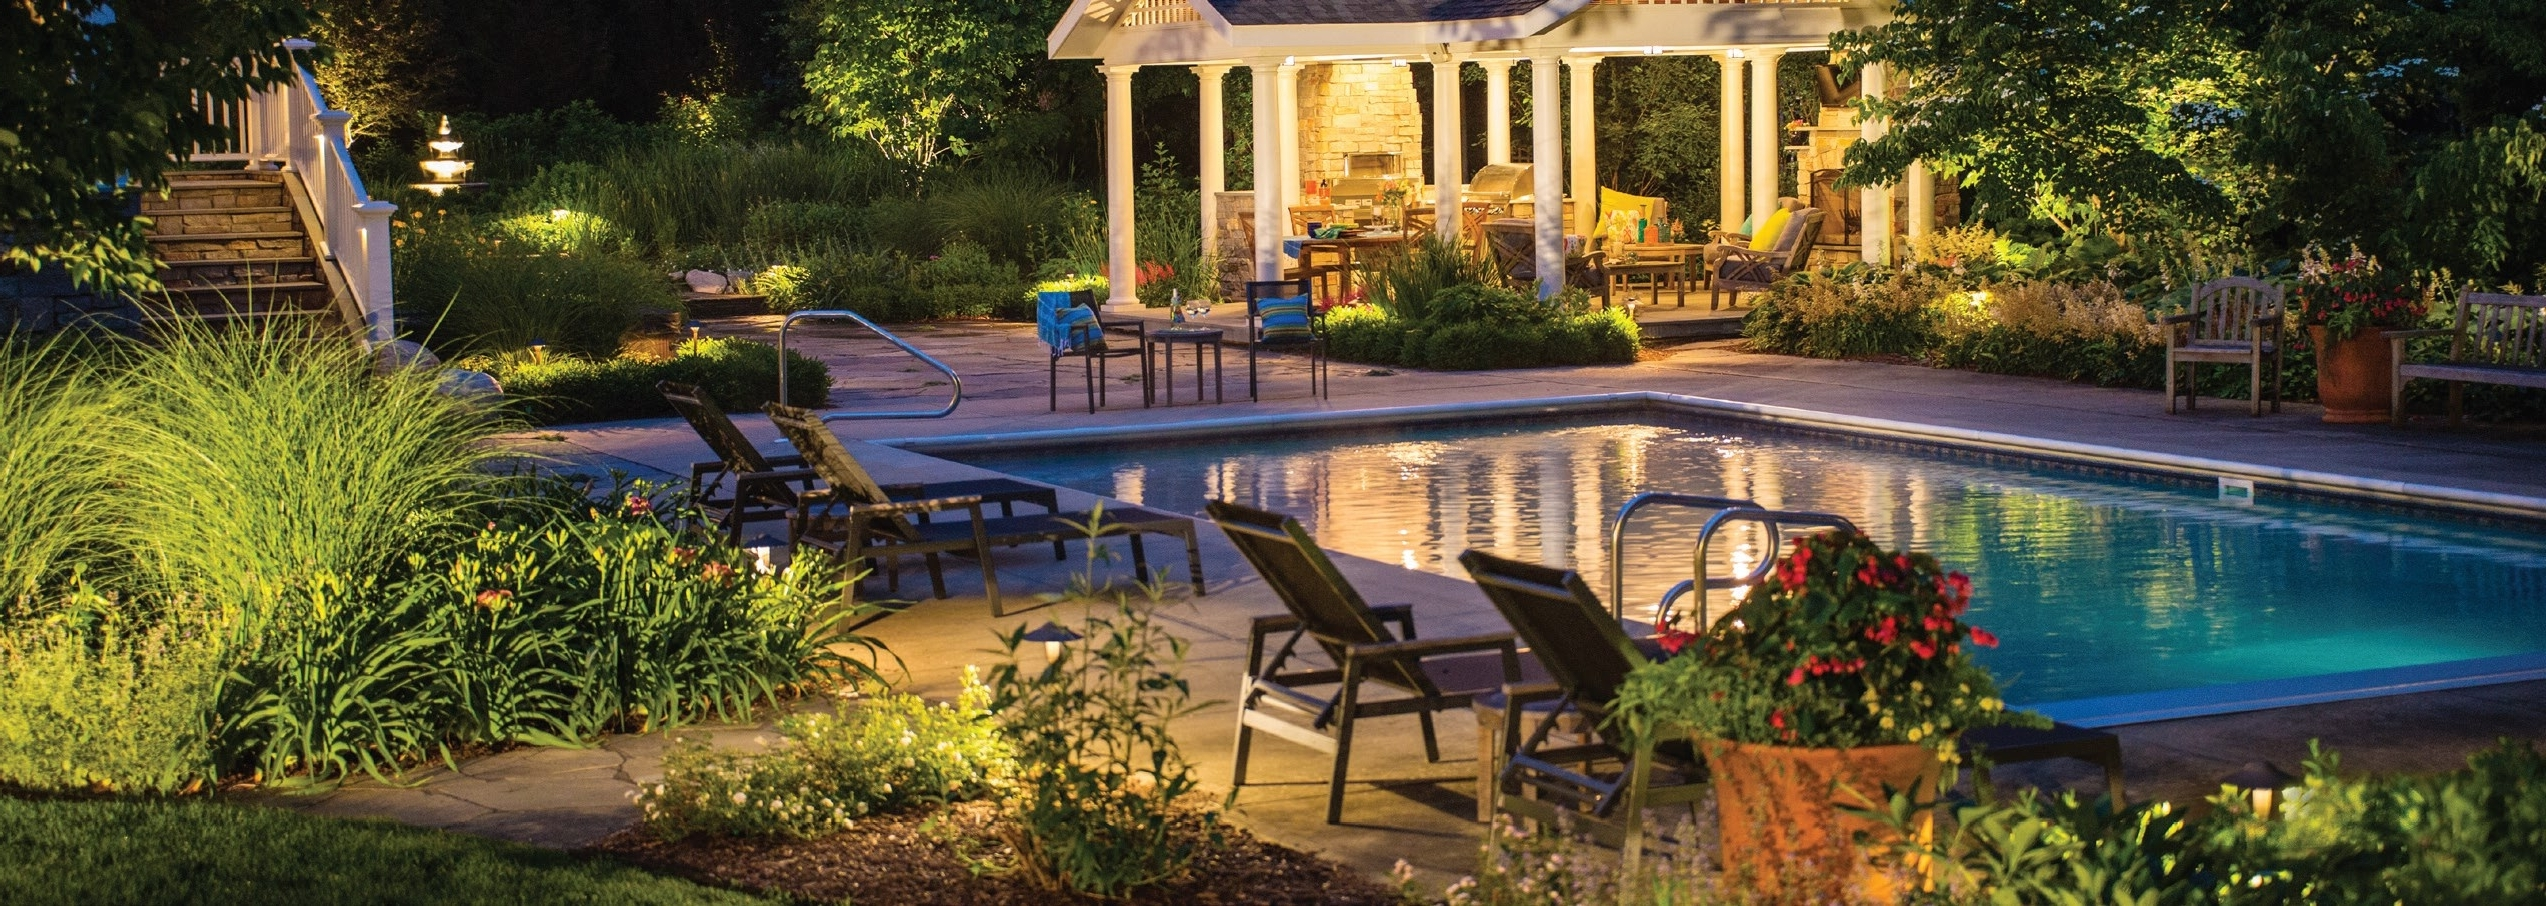 The Many Opportunities Of Low Voltage Landscape Lighting – Turf Throughout Well Known Let Outdoor Kichler Lighting (View 19 of 20)